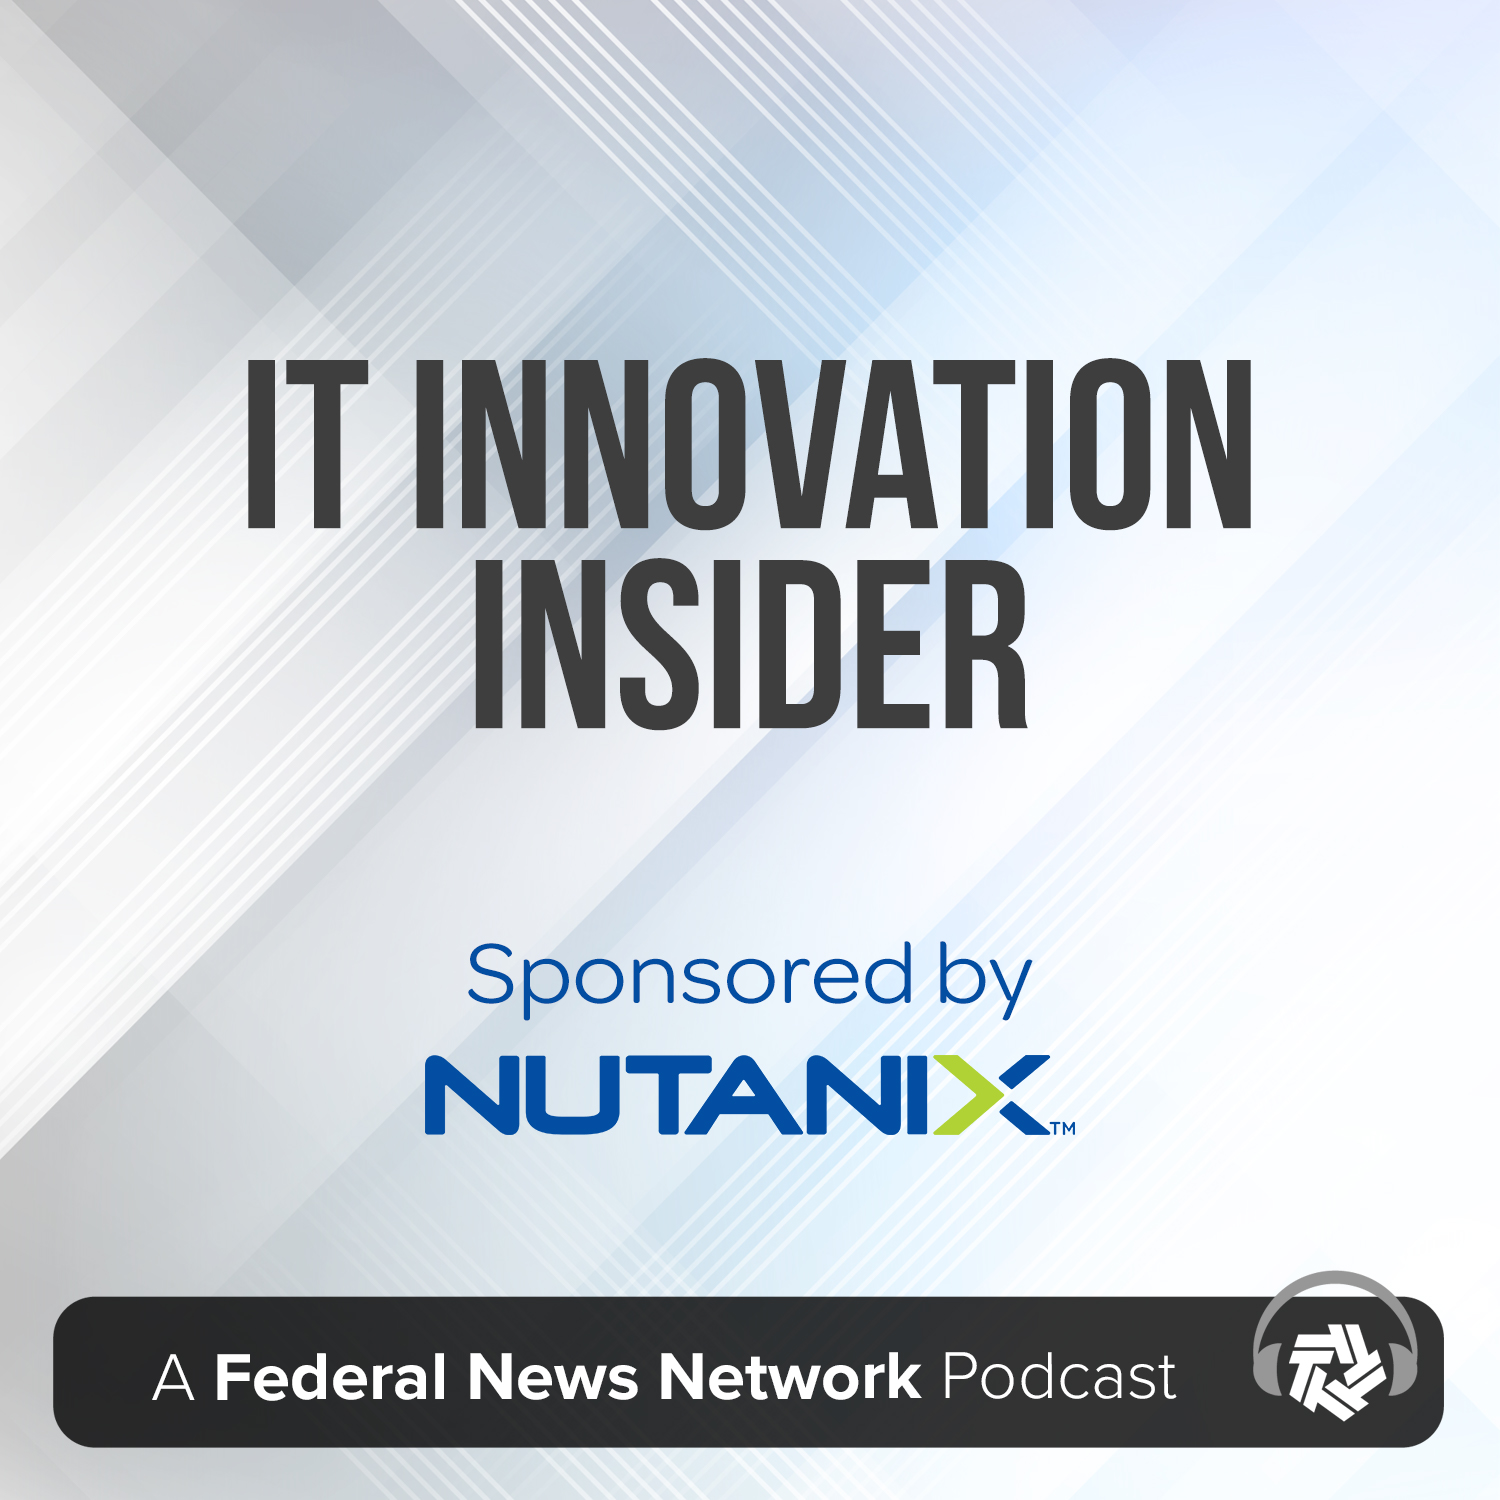 IT Innovation Insider